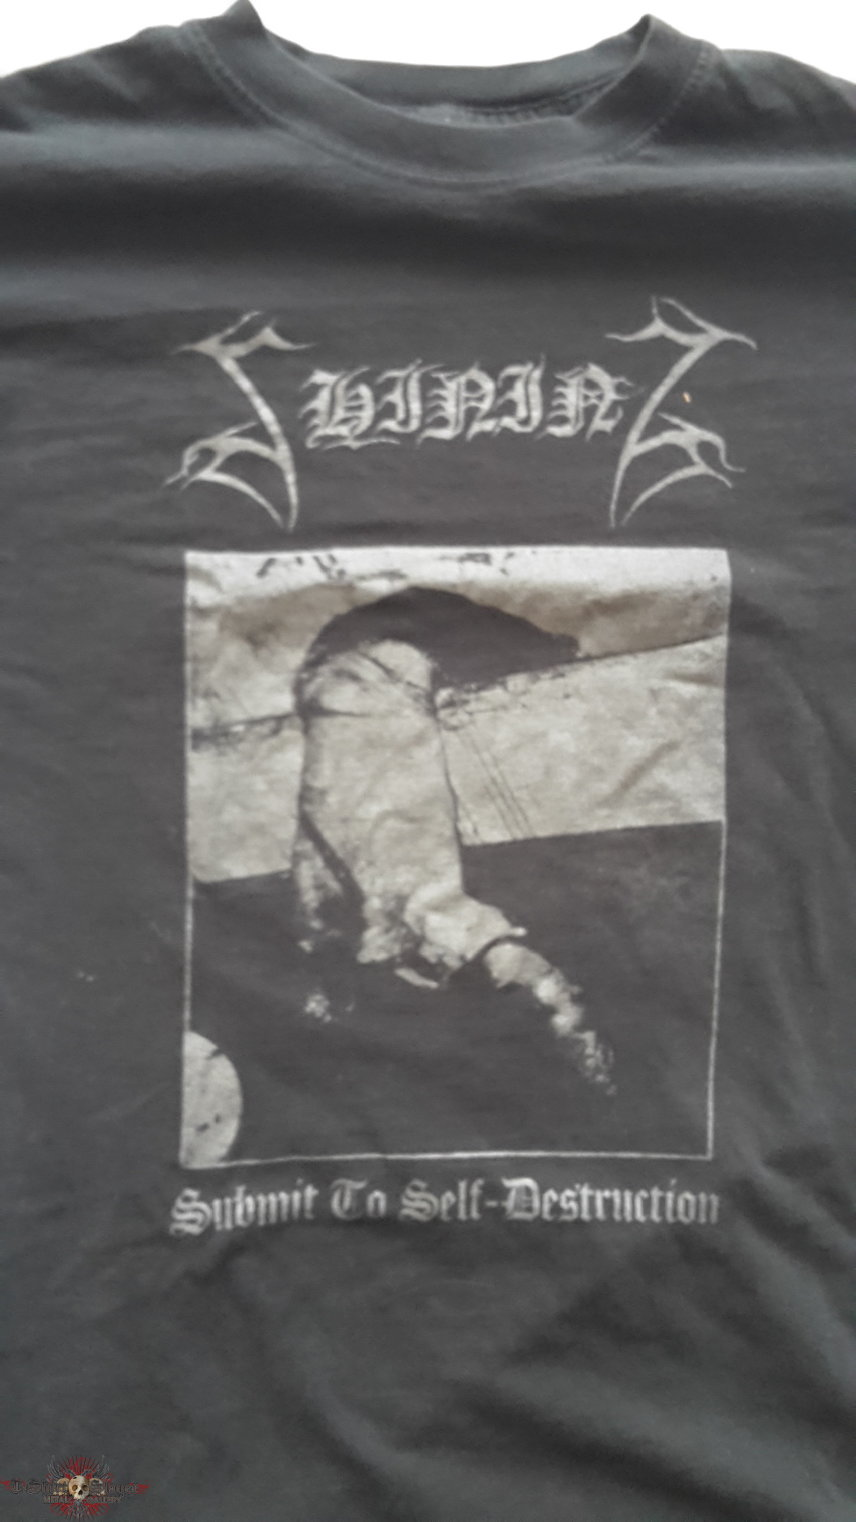 Shining - Submit to Self-Destruction Longsleeve, XL